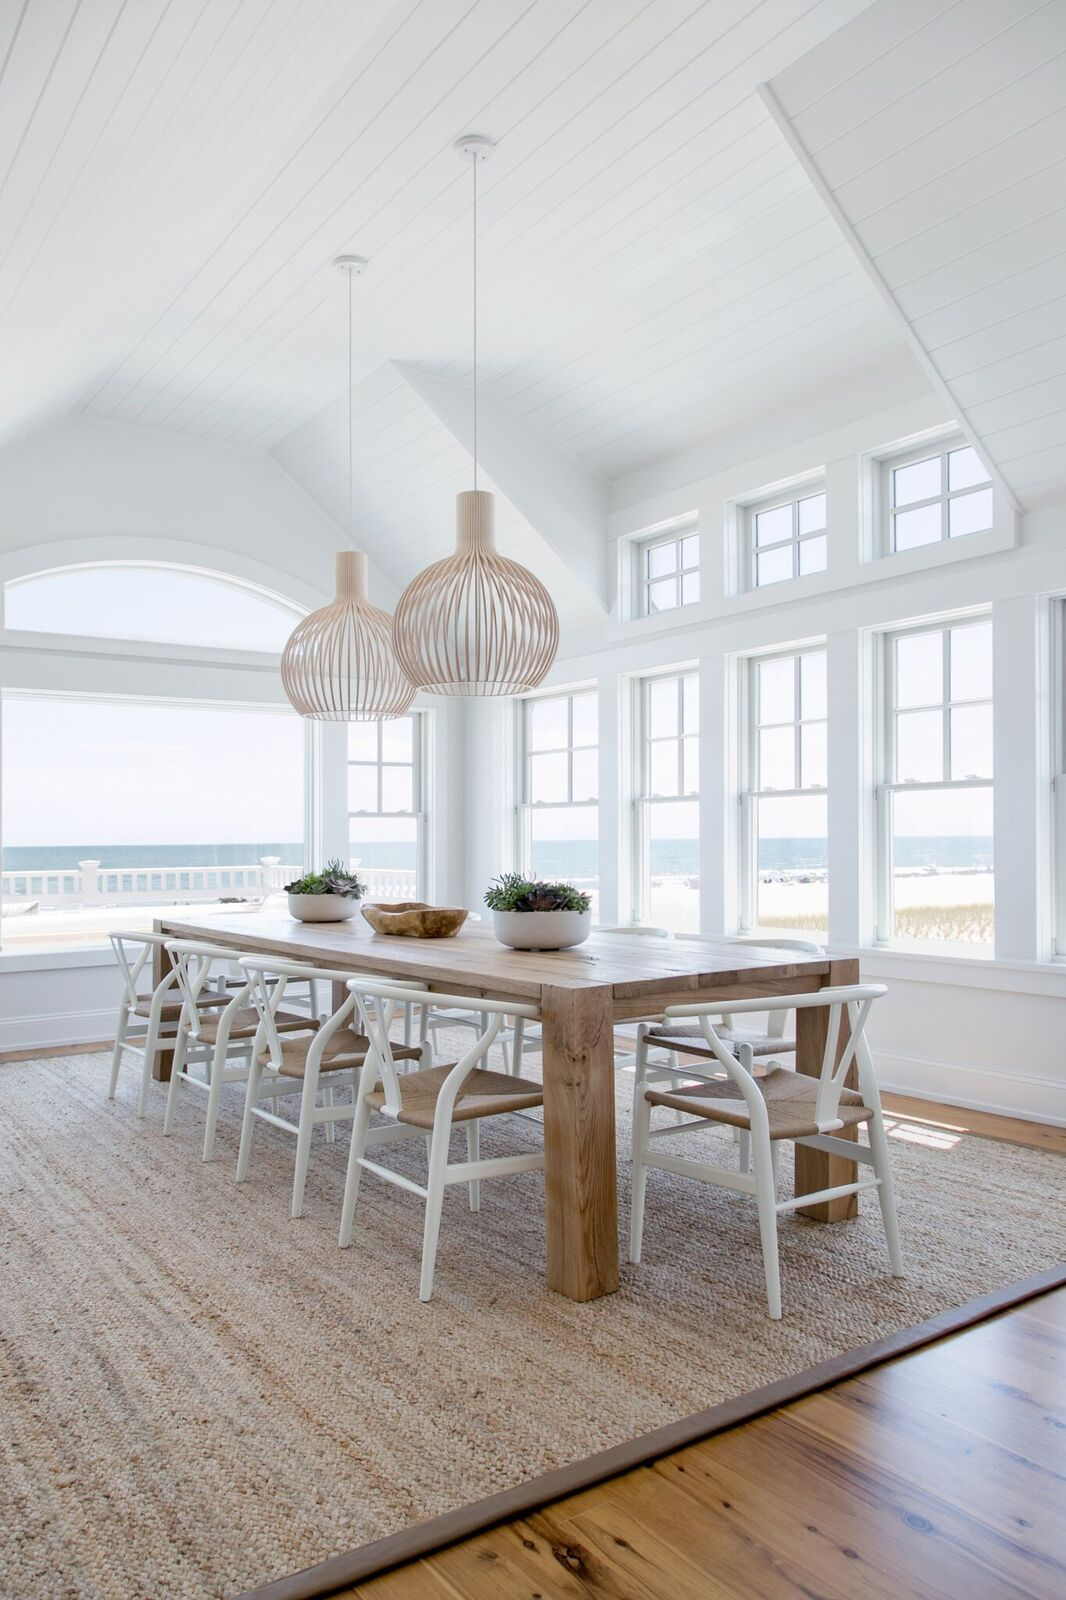 This Seaside House Is Giving Us So Many Beachy Decor Ideas Beach House Dining Room House Interior Dining Room Design